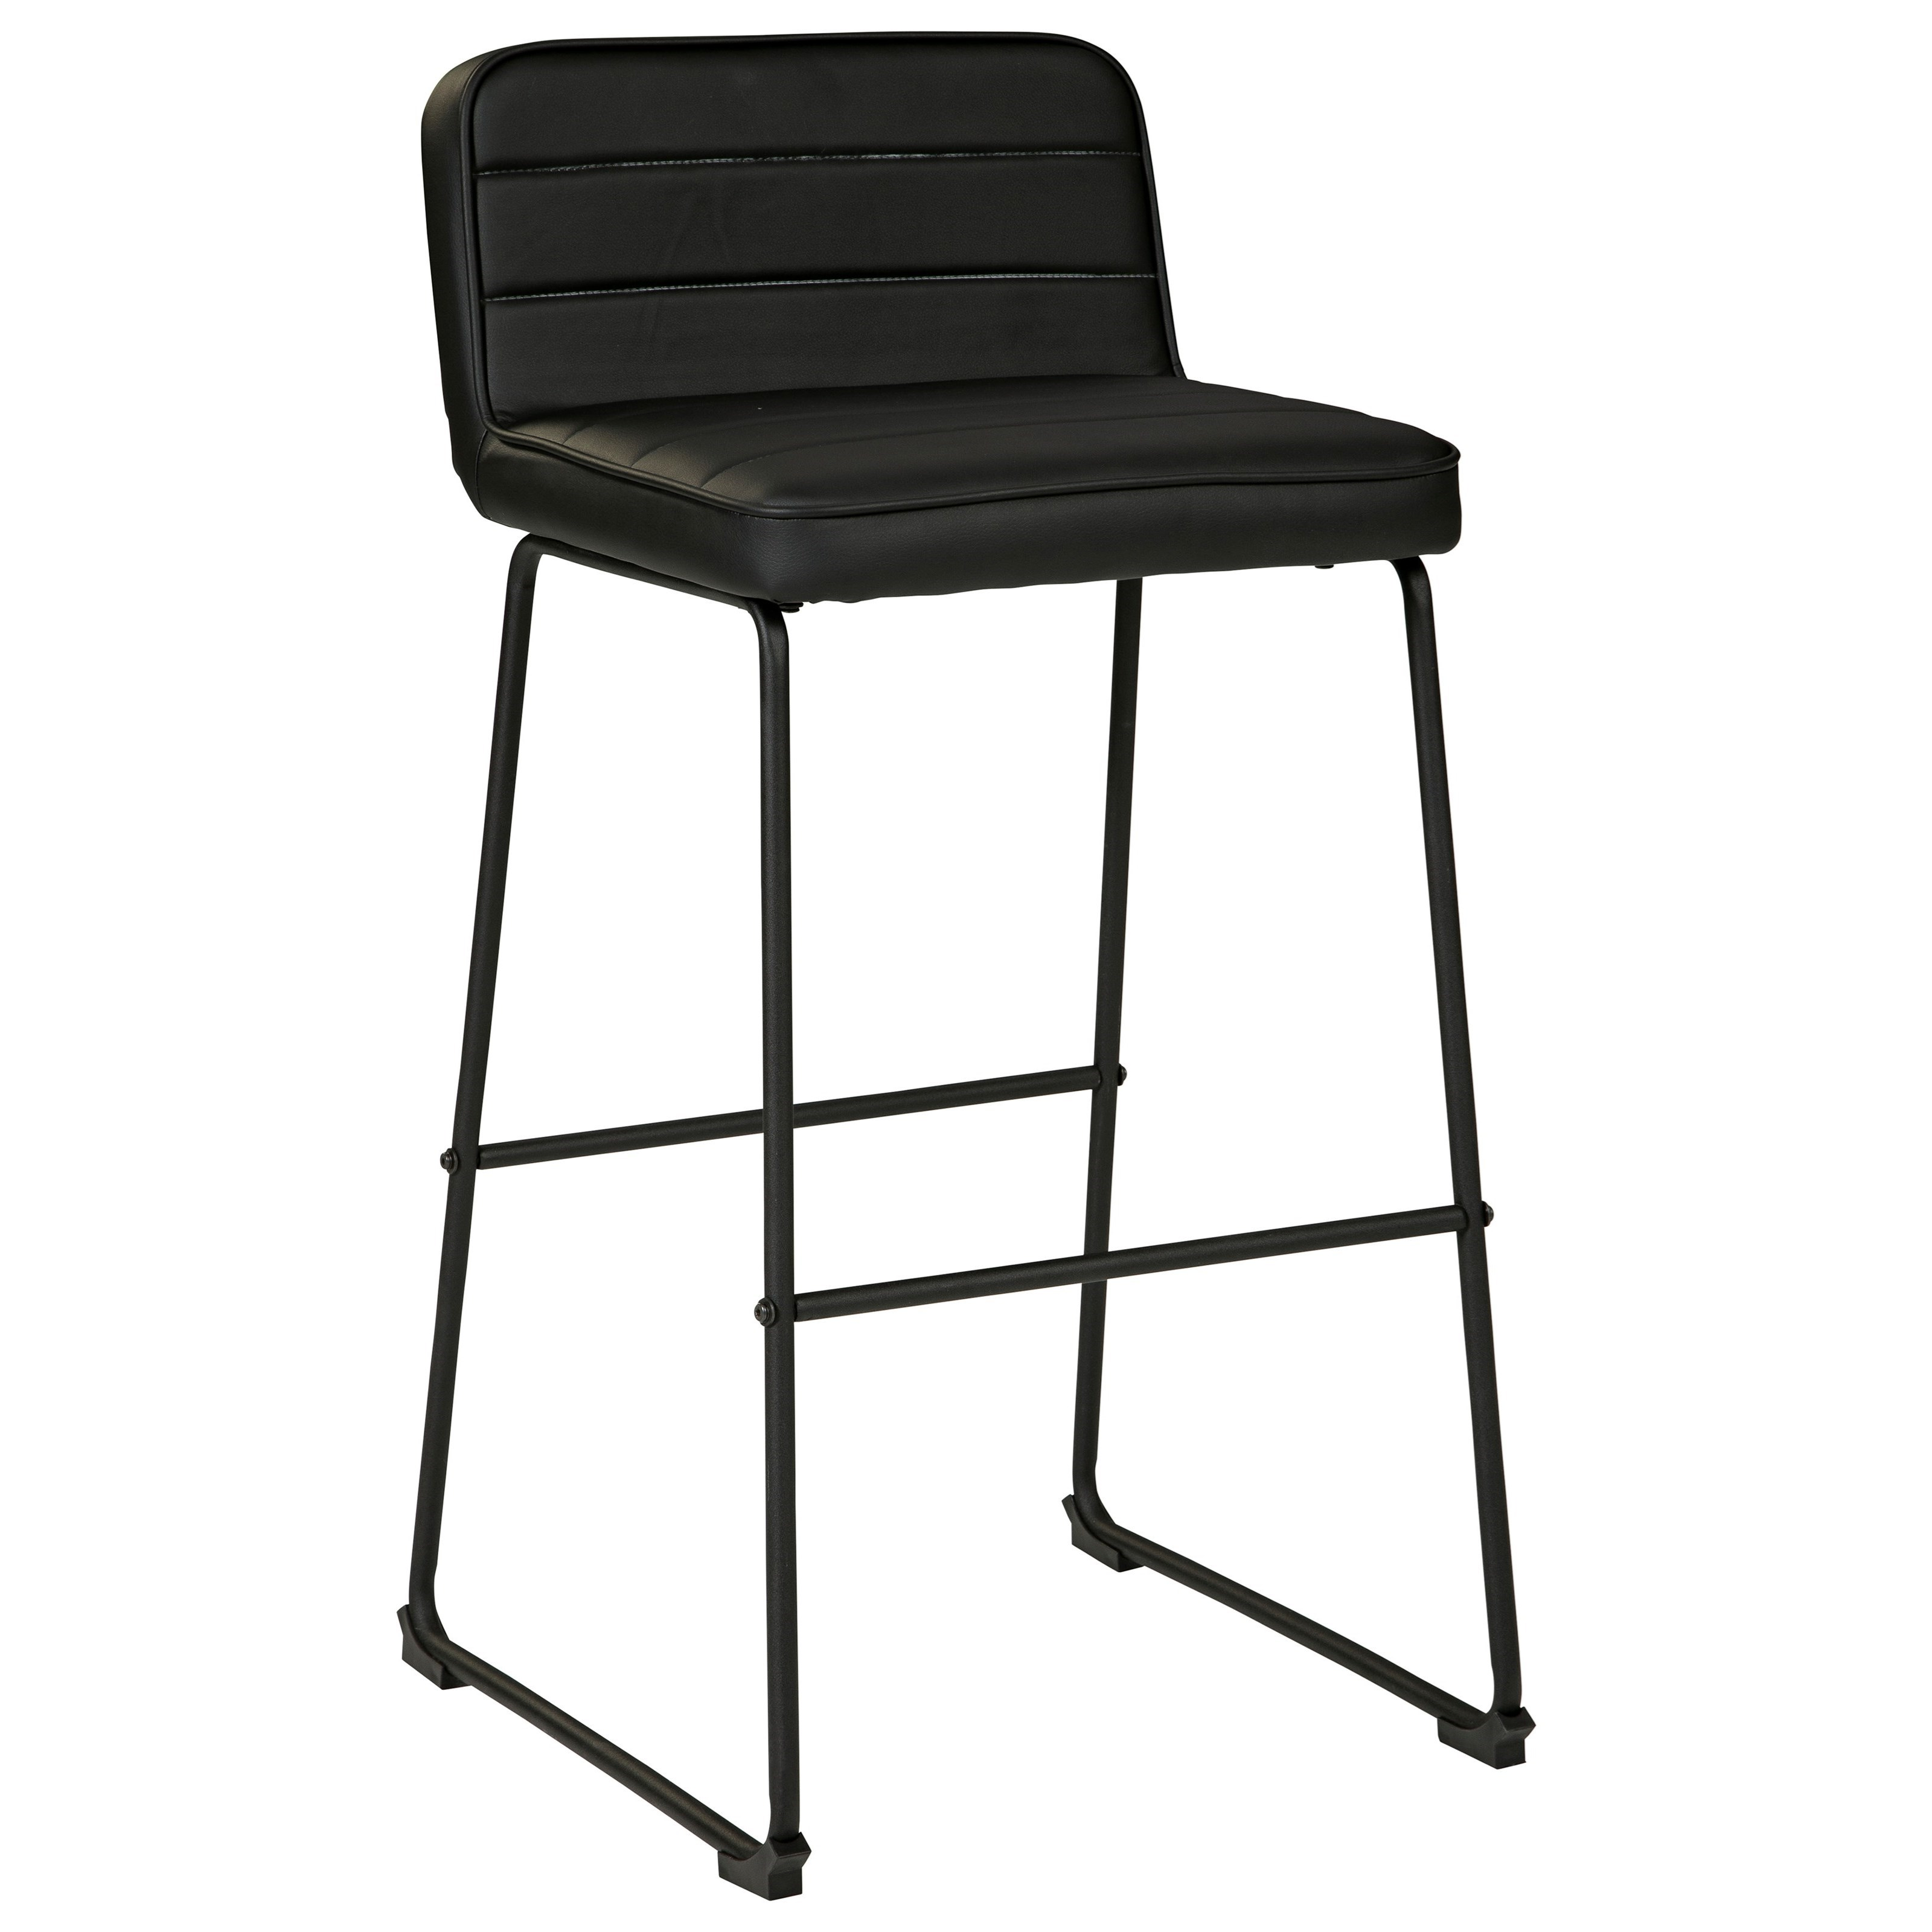 Nerison Tall Bar Stool  by Signature Design by Ashley at Sparks HomeStore